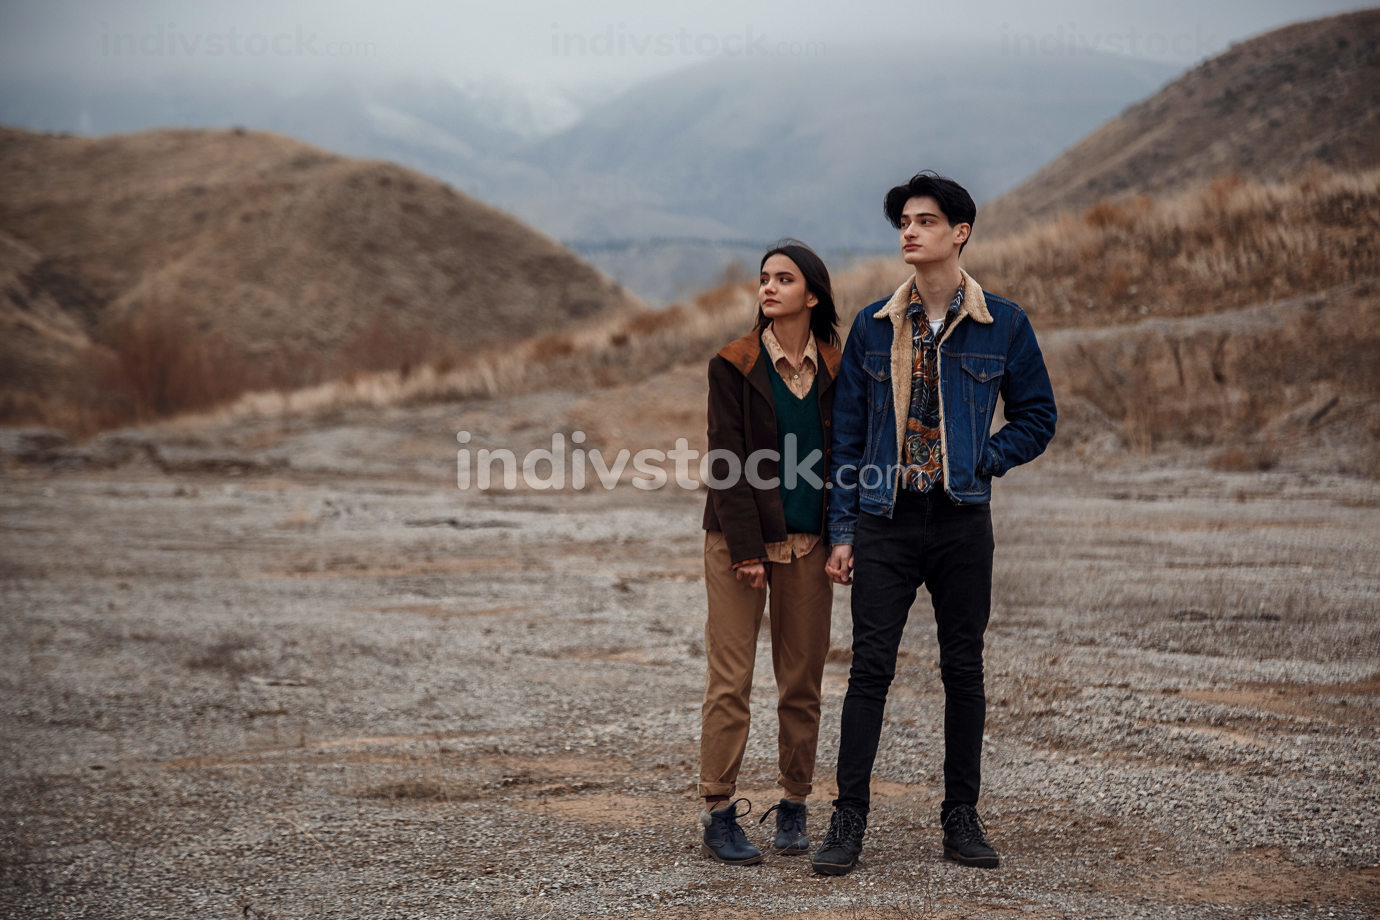 Dramatic portrait of a young brunette girl and a guy in cloudy weather. selective focus, small focus area